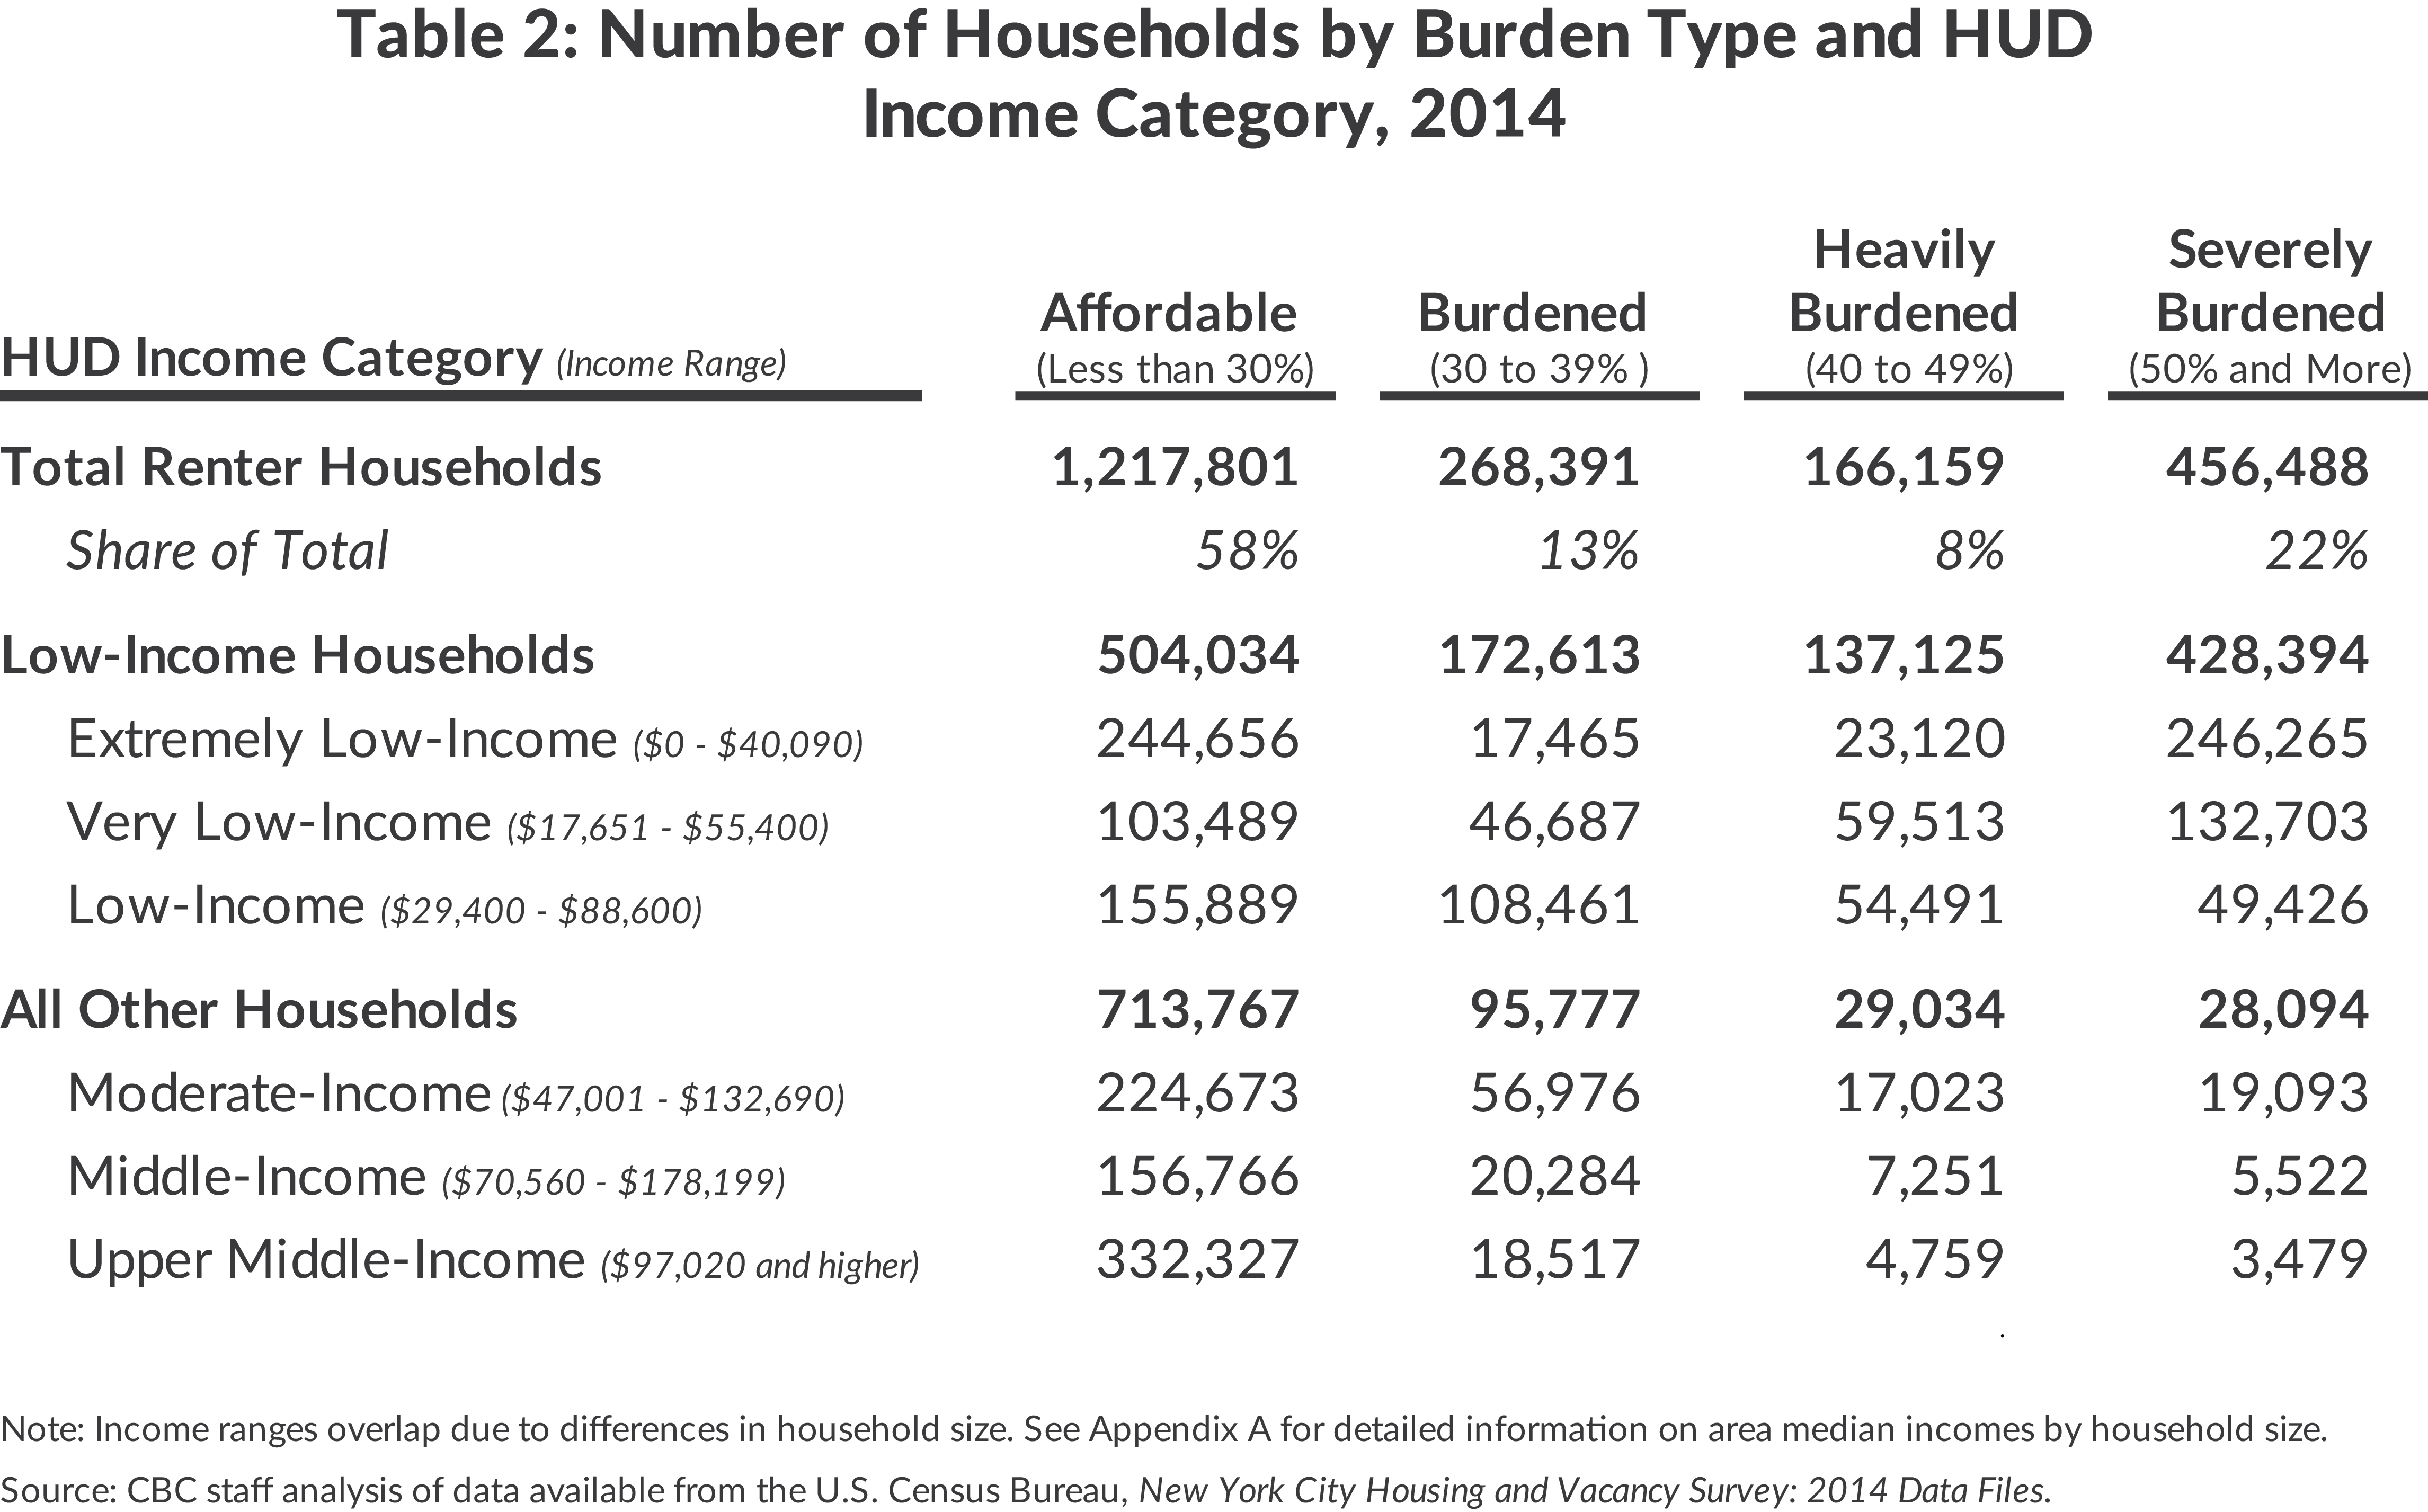 Table 2: Number of Households by Burden Type and HUDIncome Category, 2014